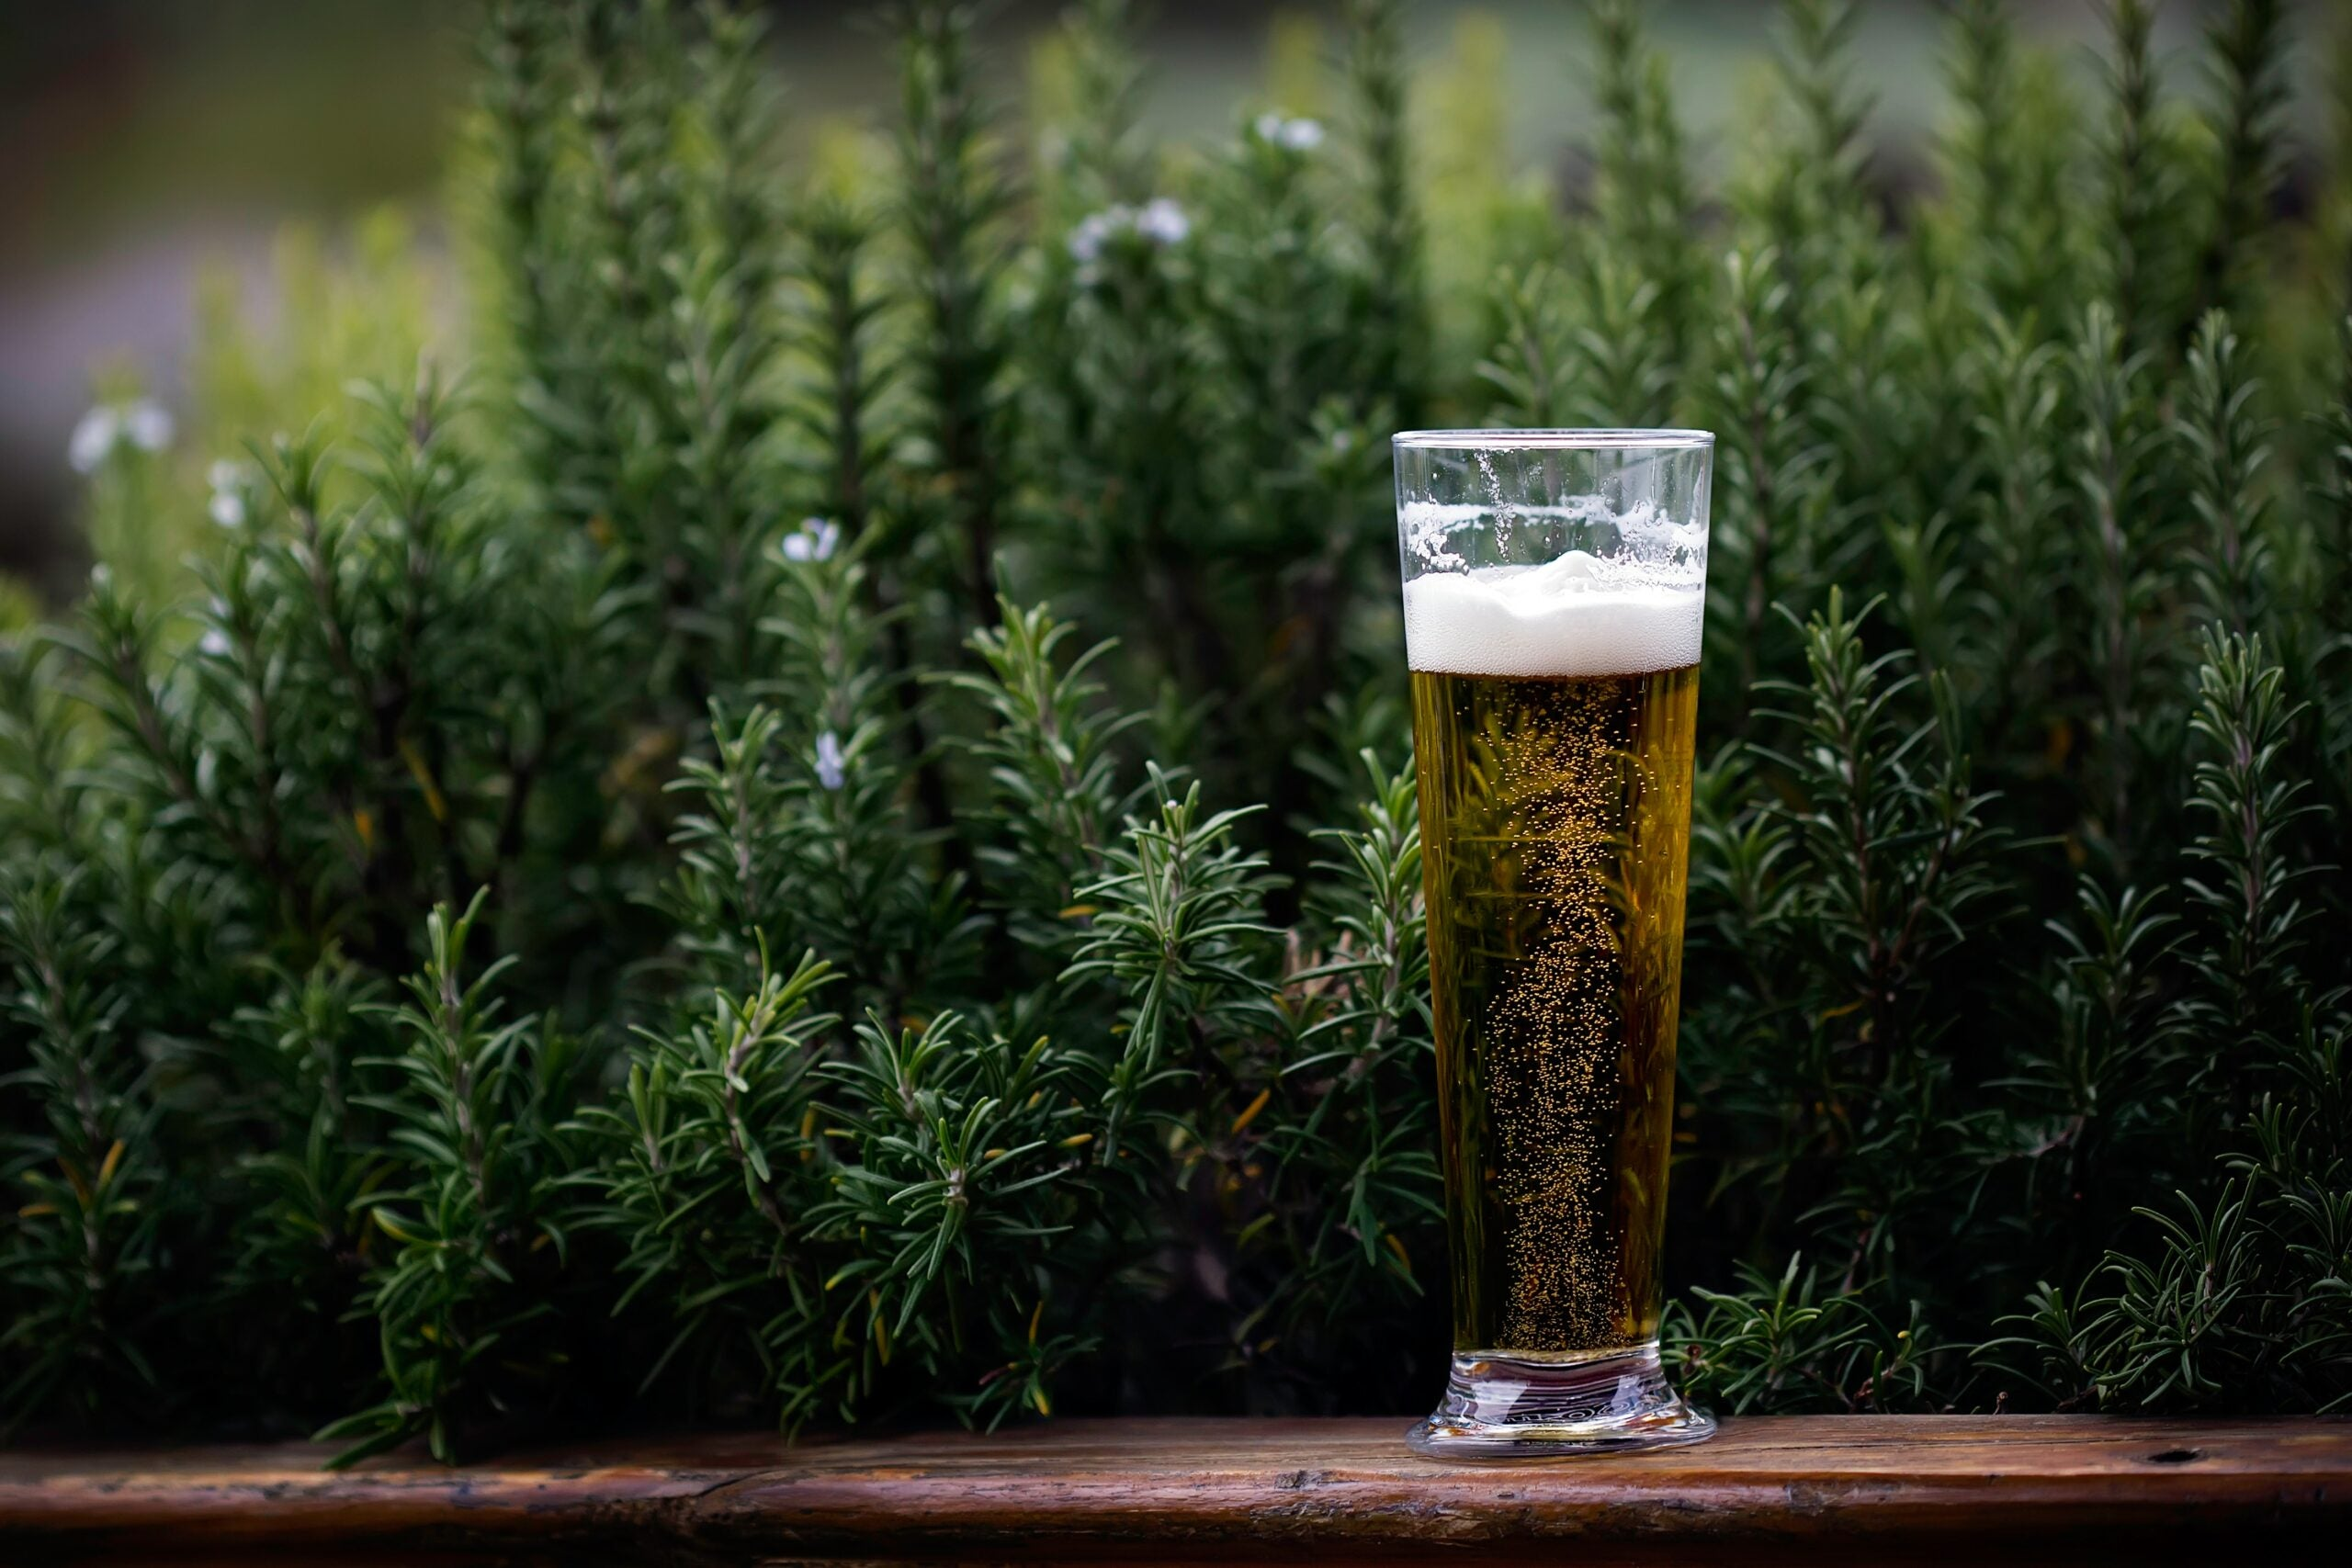 Climate change brings rising seas—and beer prices